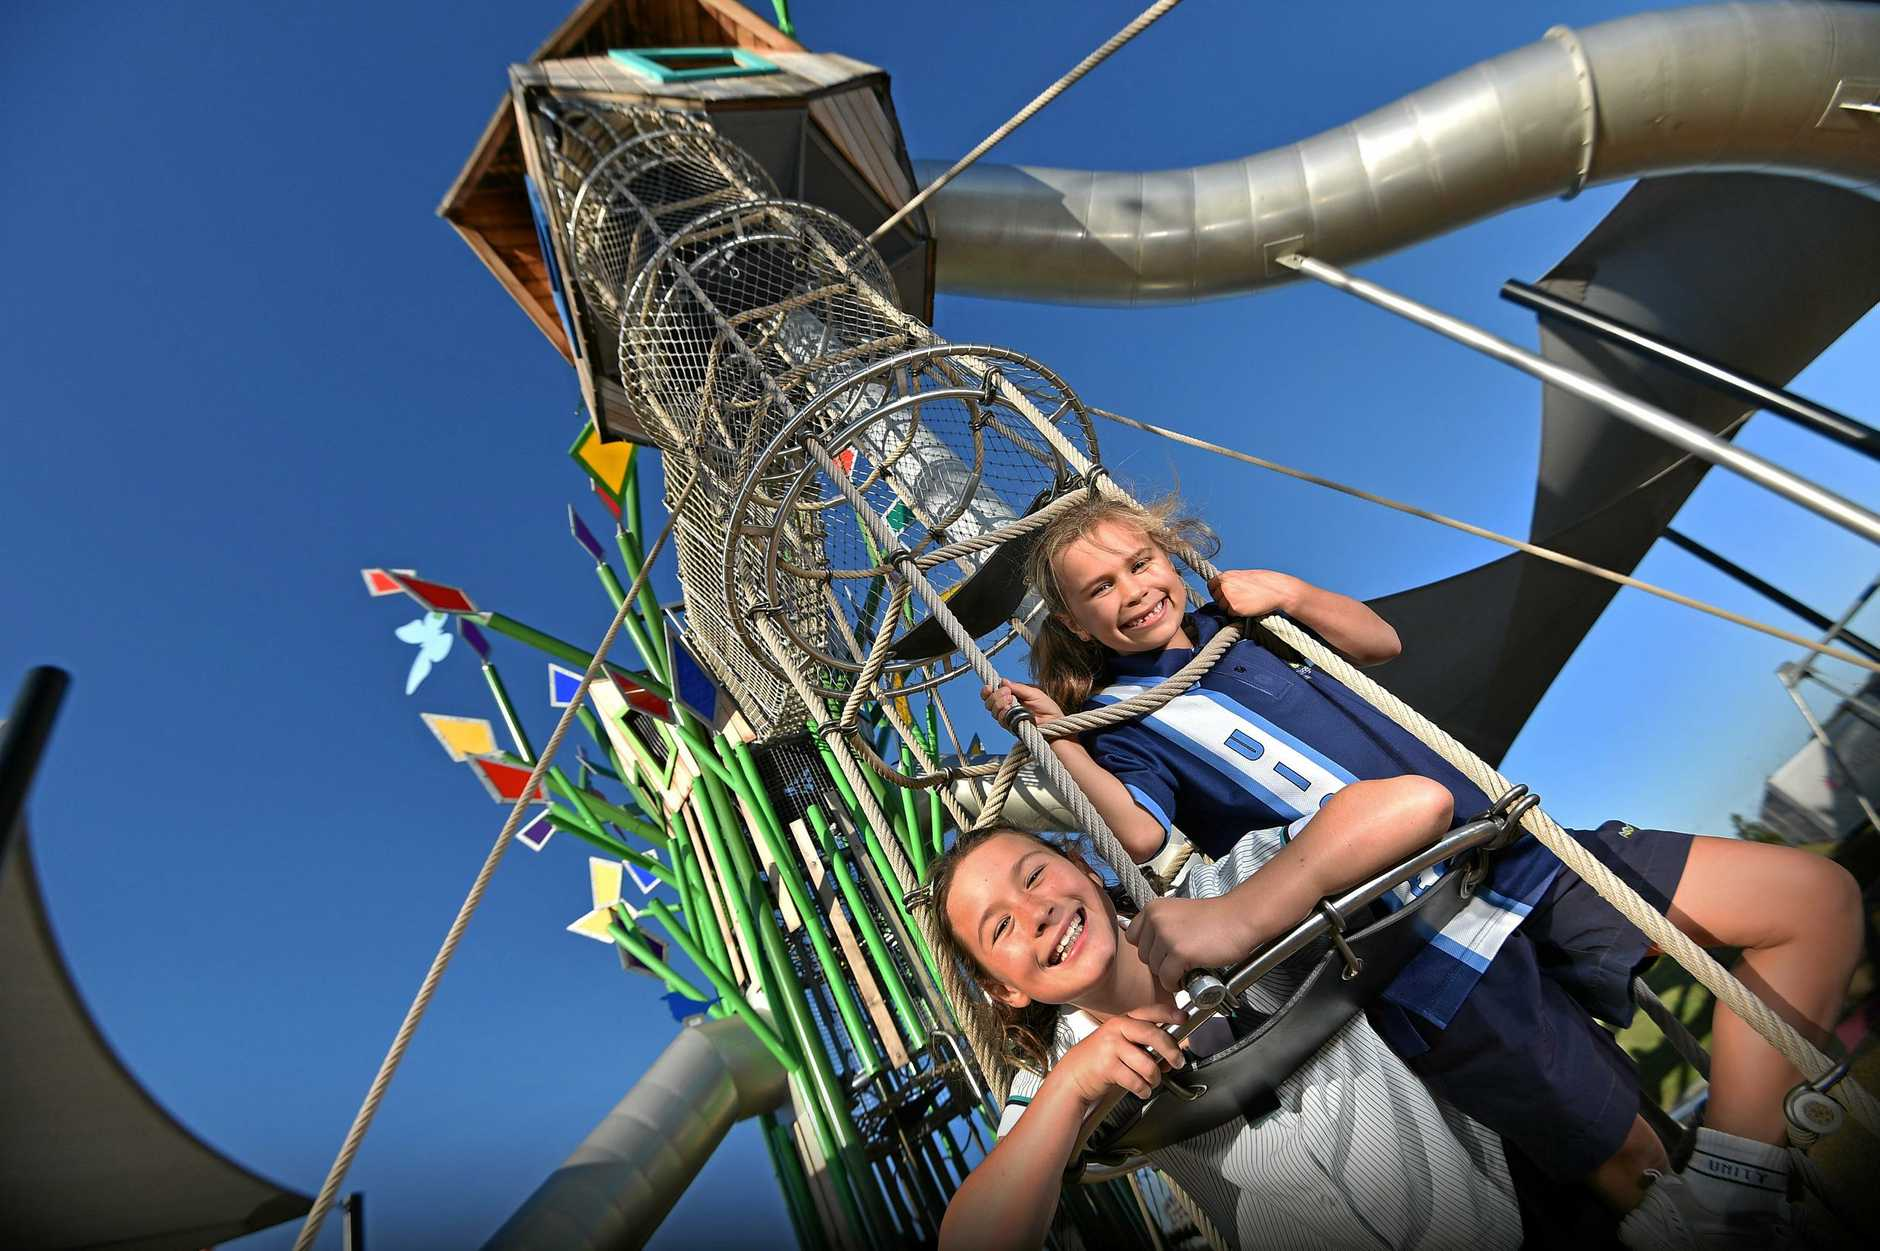 Out having fun on the space-age playground equipment at Aura are Millie and Summer Greig.